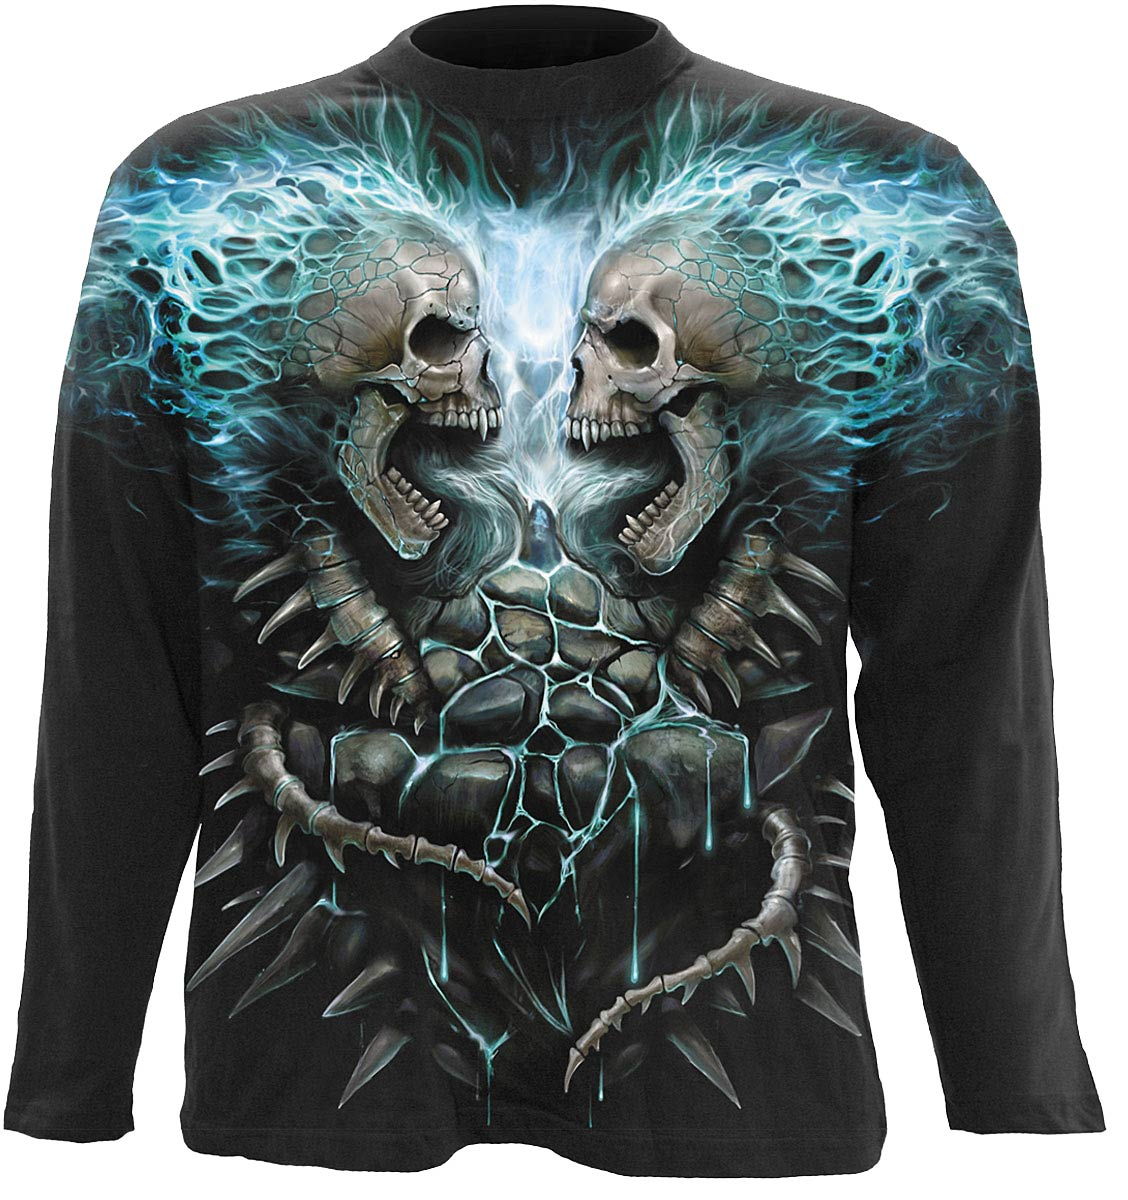 SPIRAL Flaming Spine Allover Longsleeve T-Shirt Black W016M304